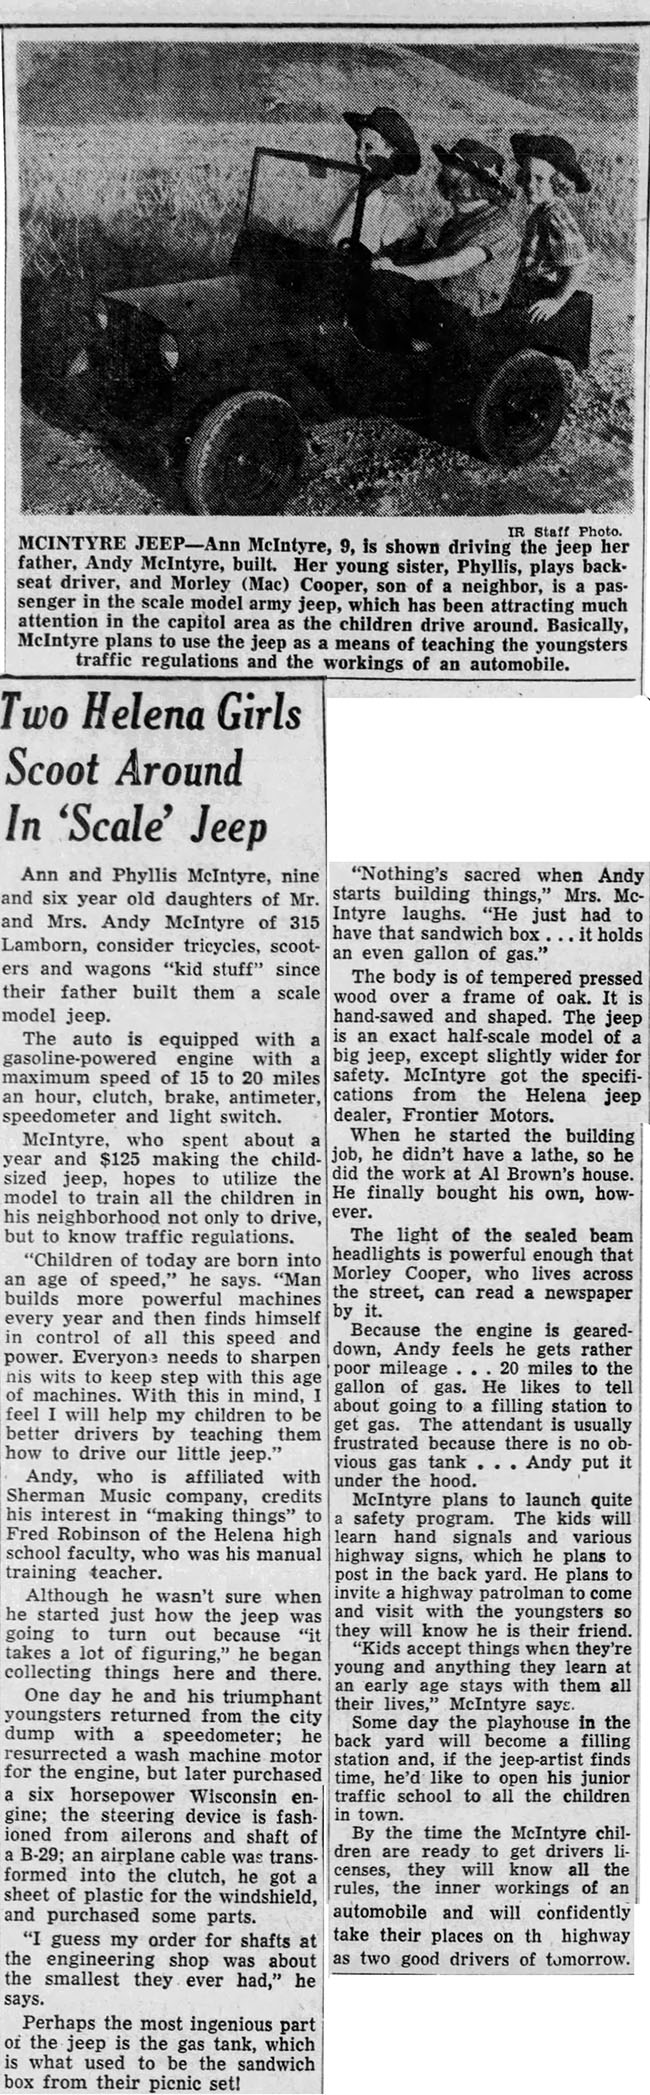 1953-08-16-the-independent-record-helena-MT-girls-and-toy-jeep-lores